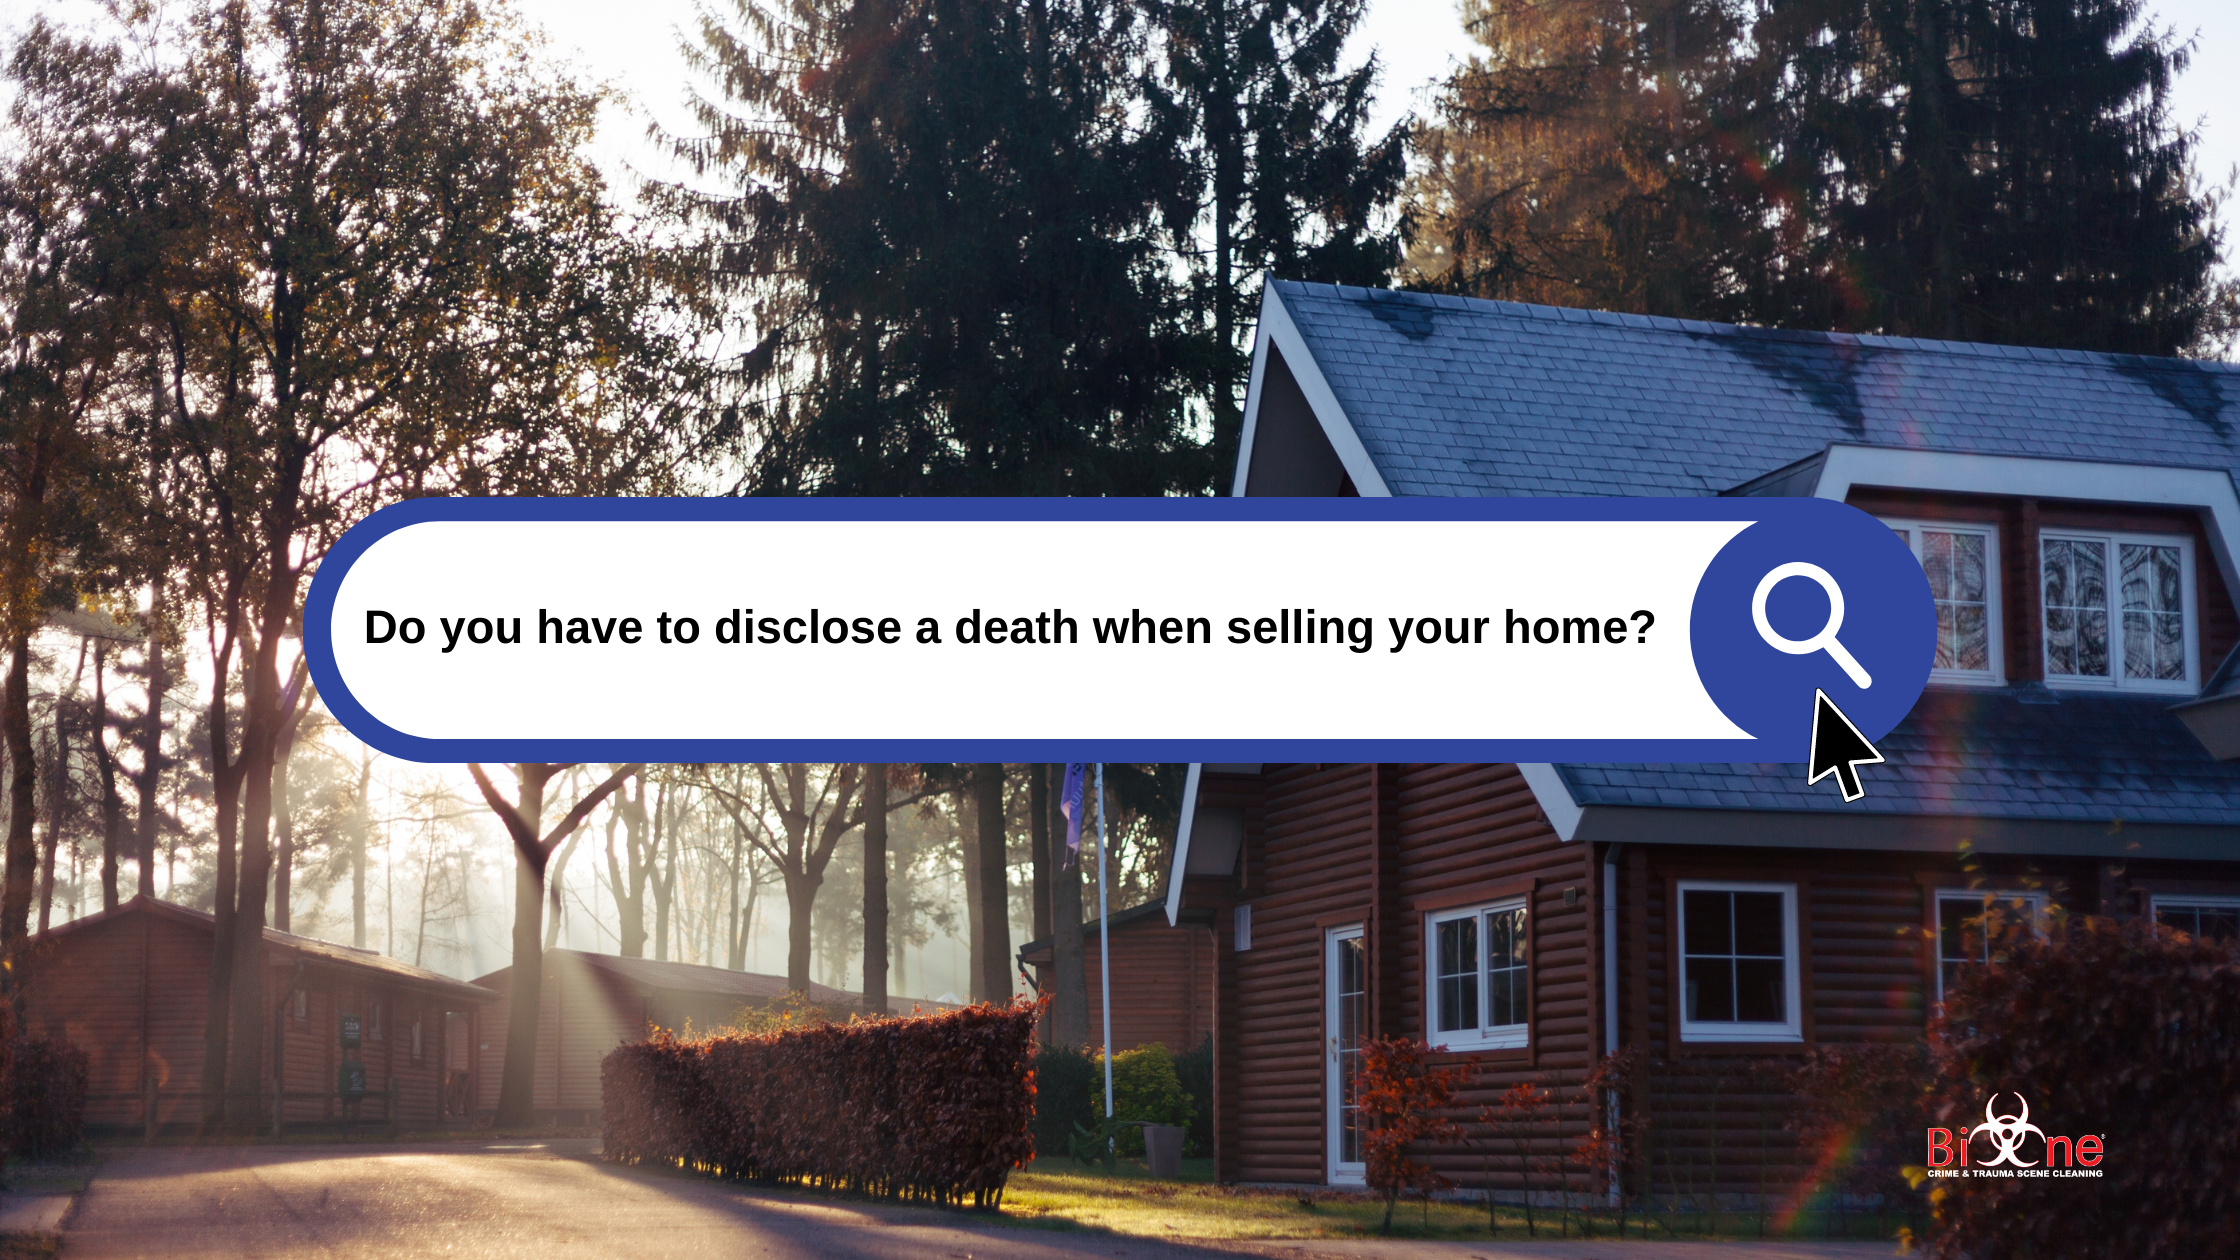 Disclosing death when selling your home